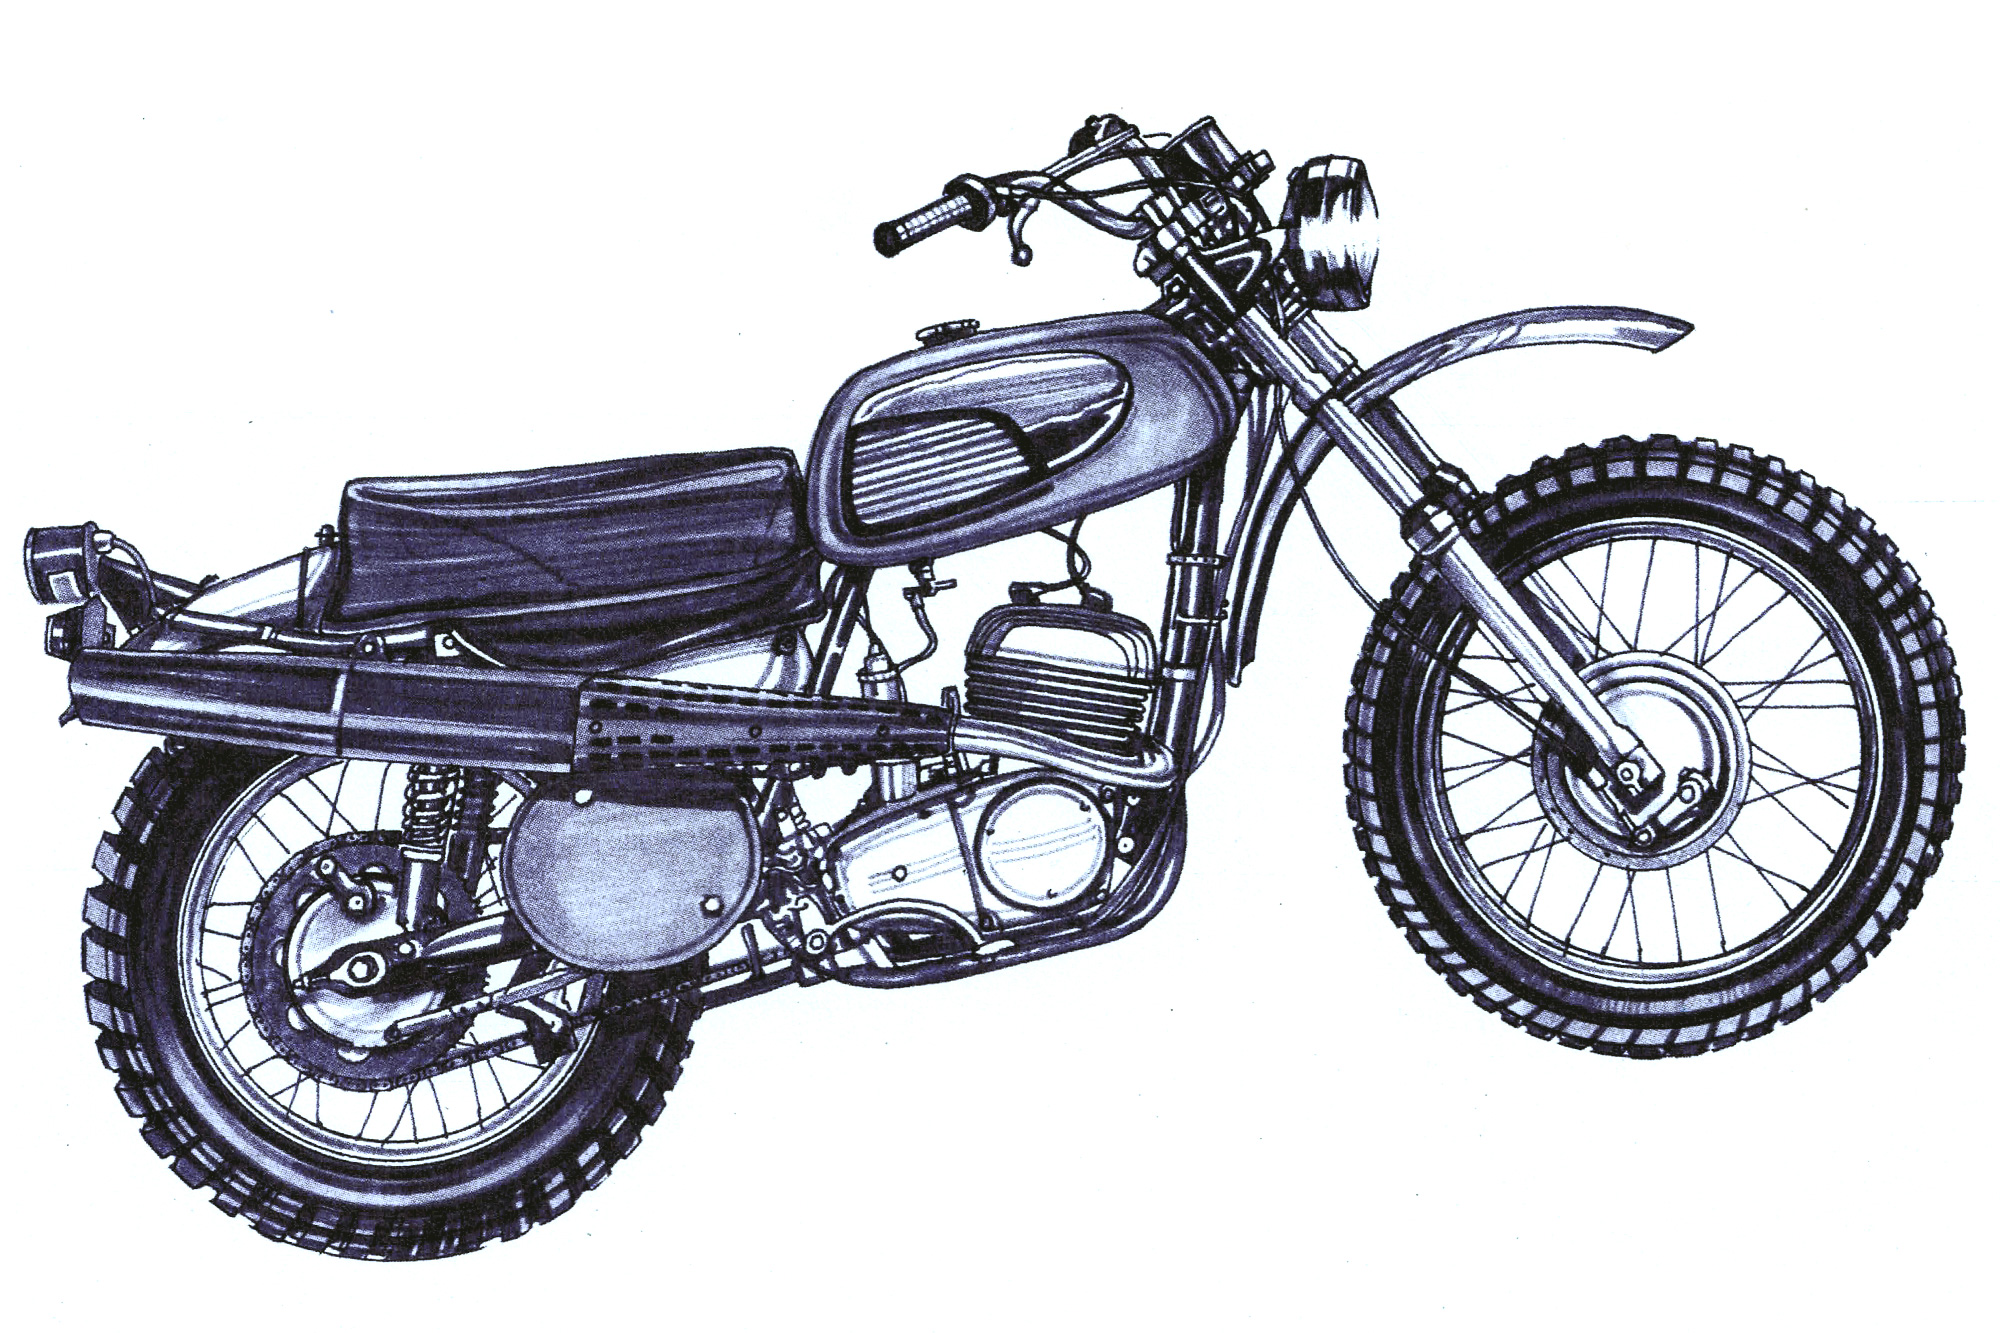 An illustration of a '70s trail motorcycle